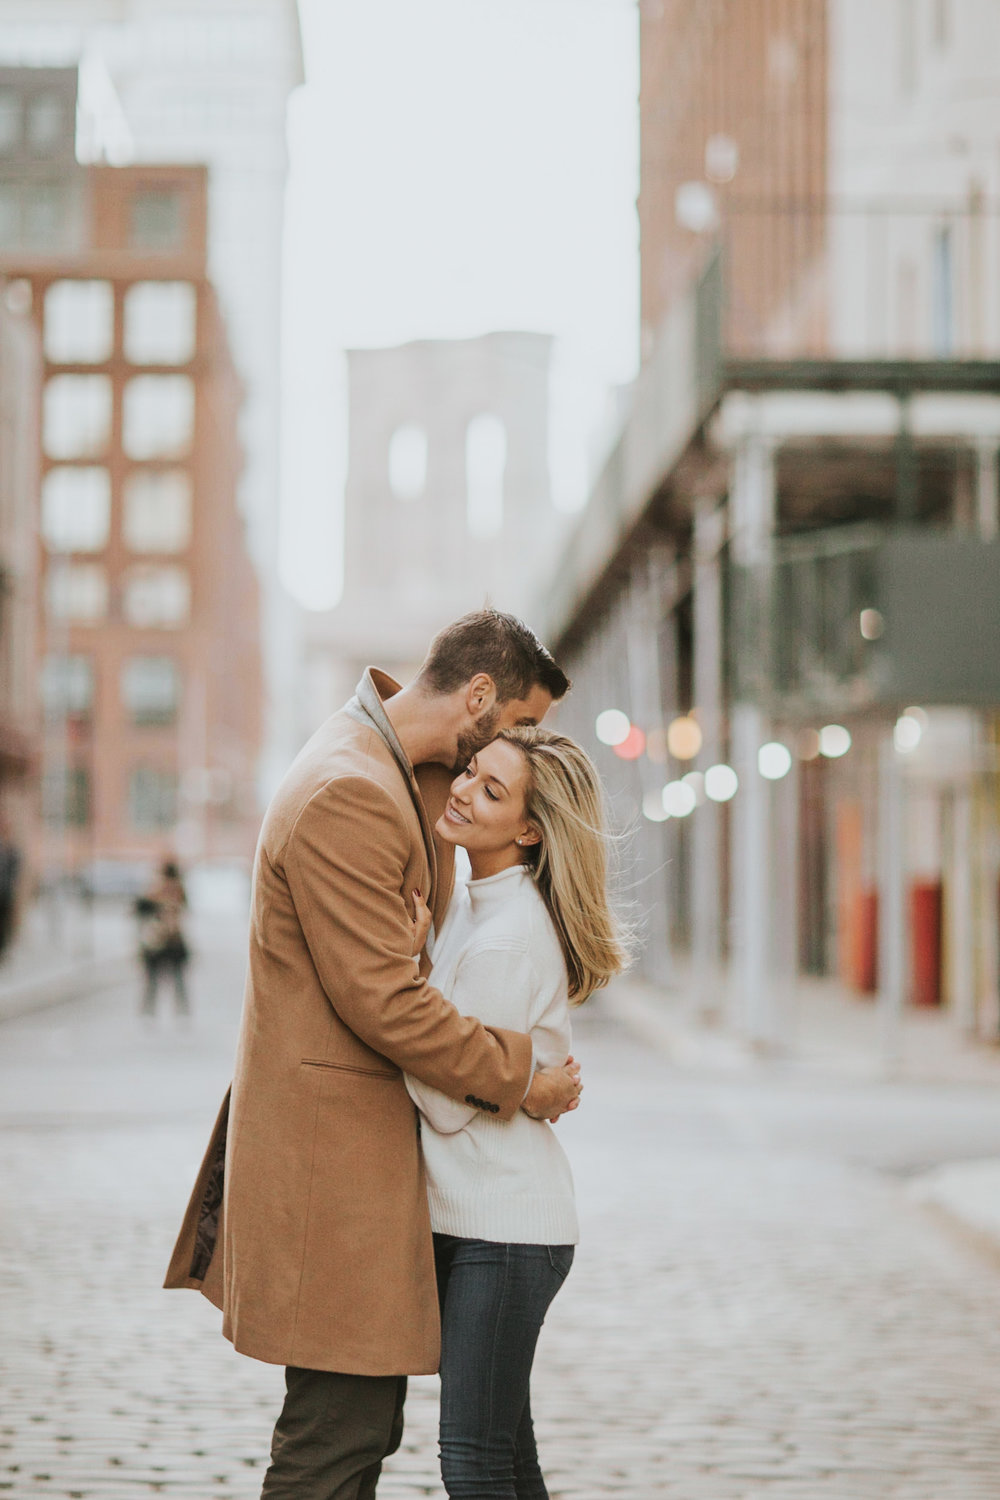 Colorful Fall NYC Engagement Session_Polly C Photography 1721154712.jpg